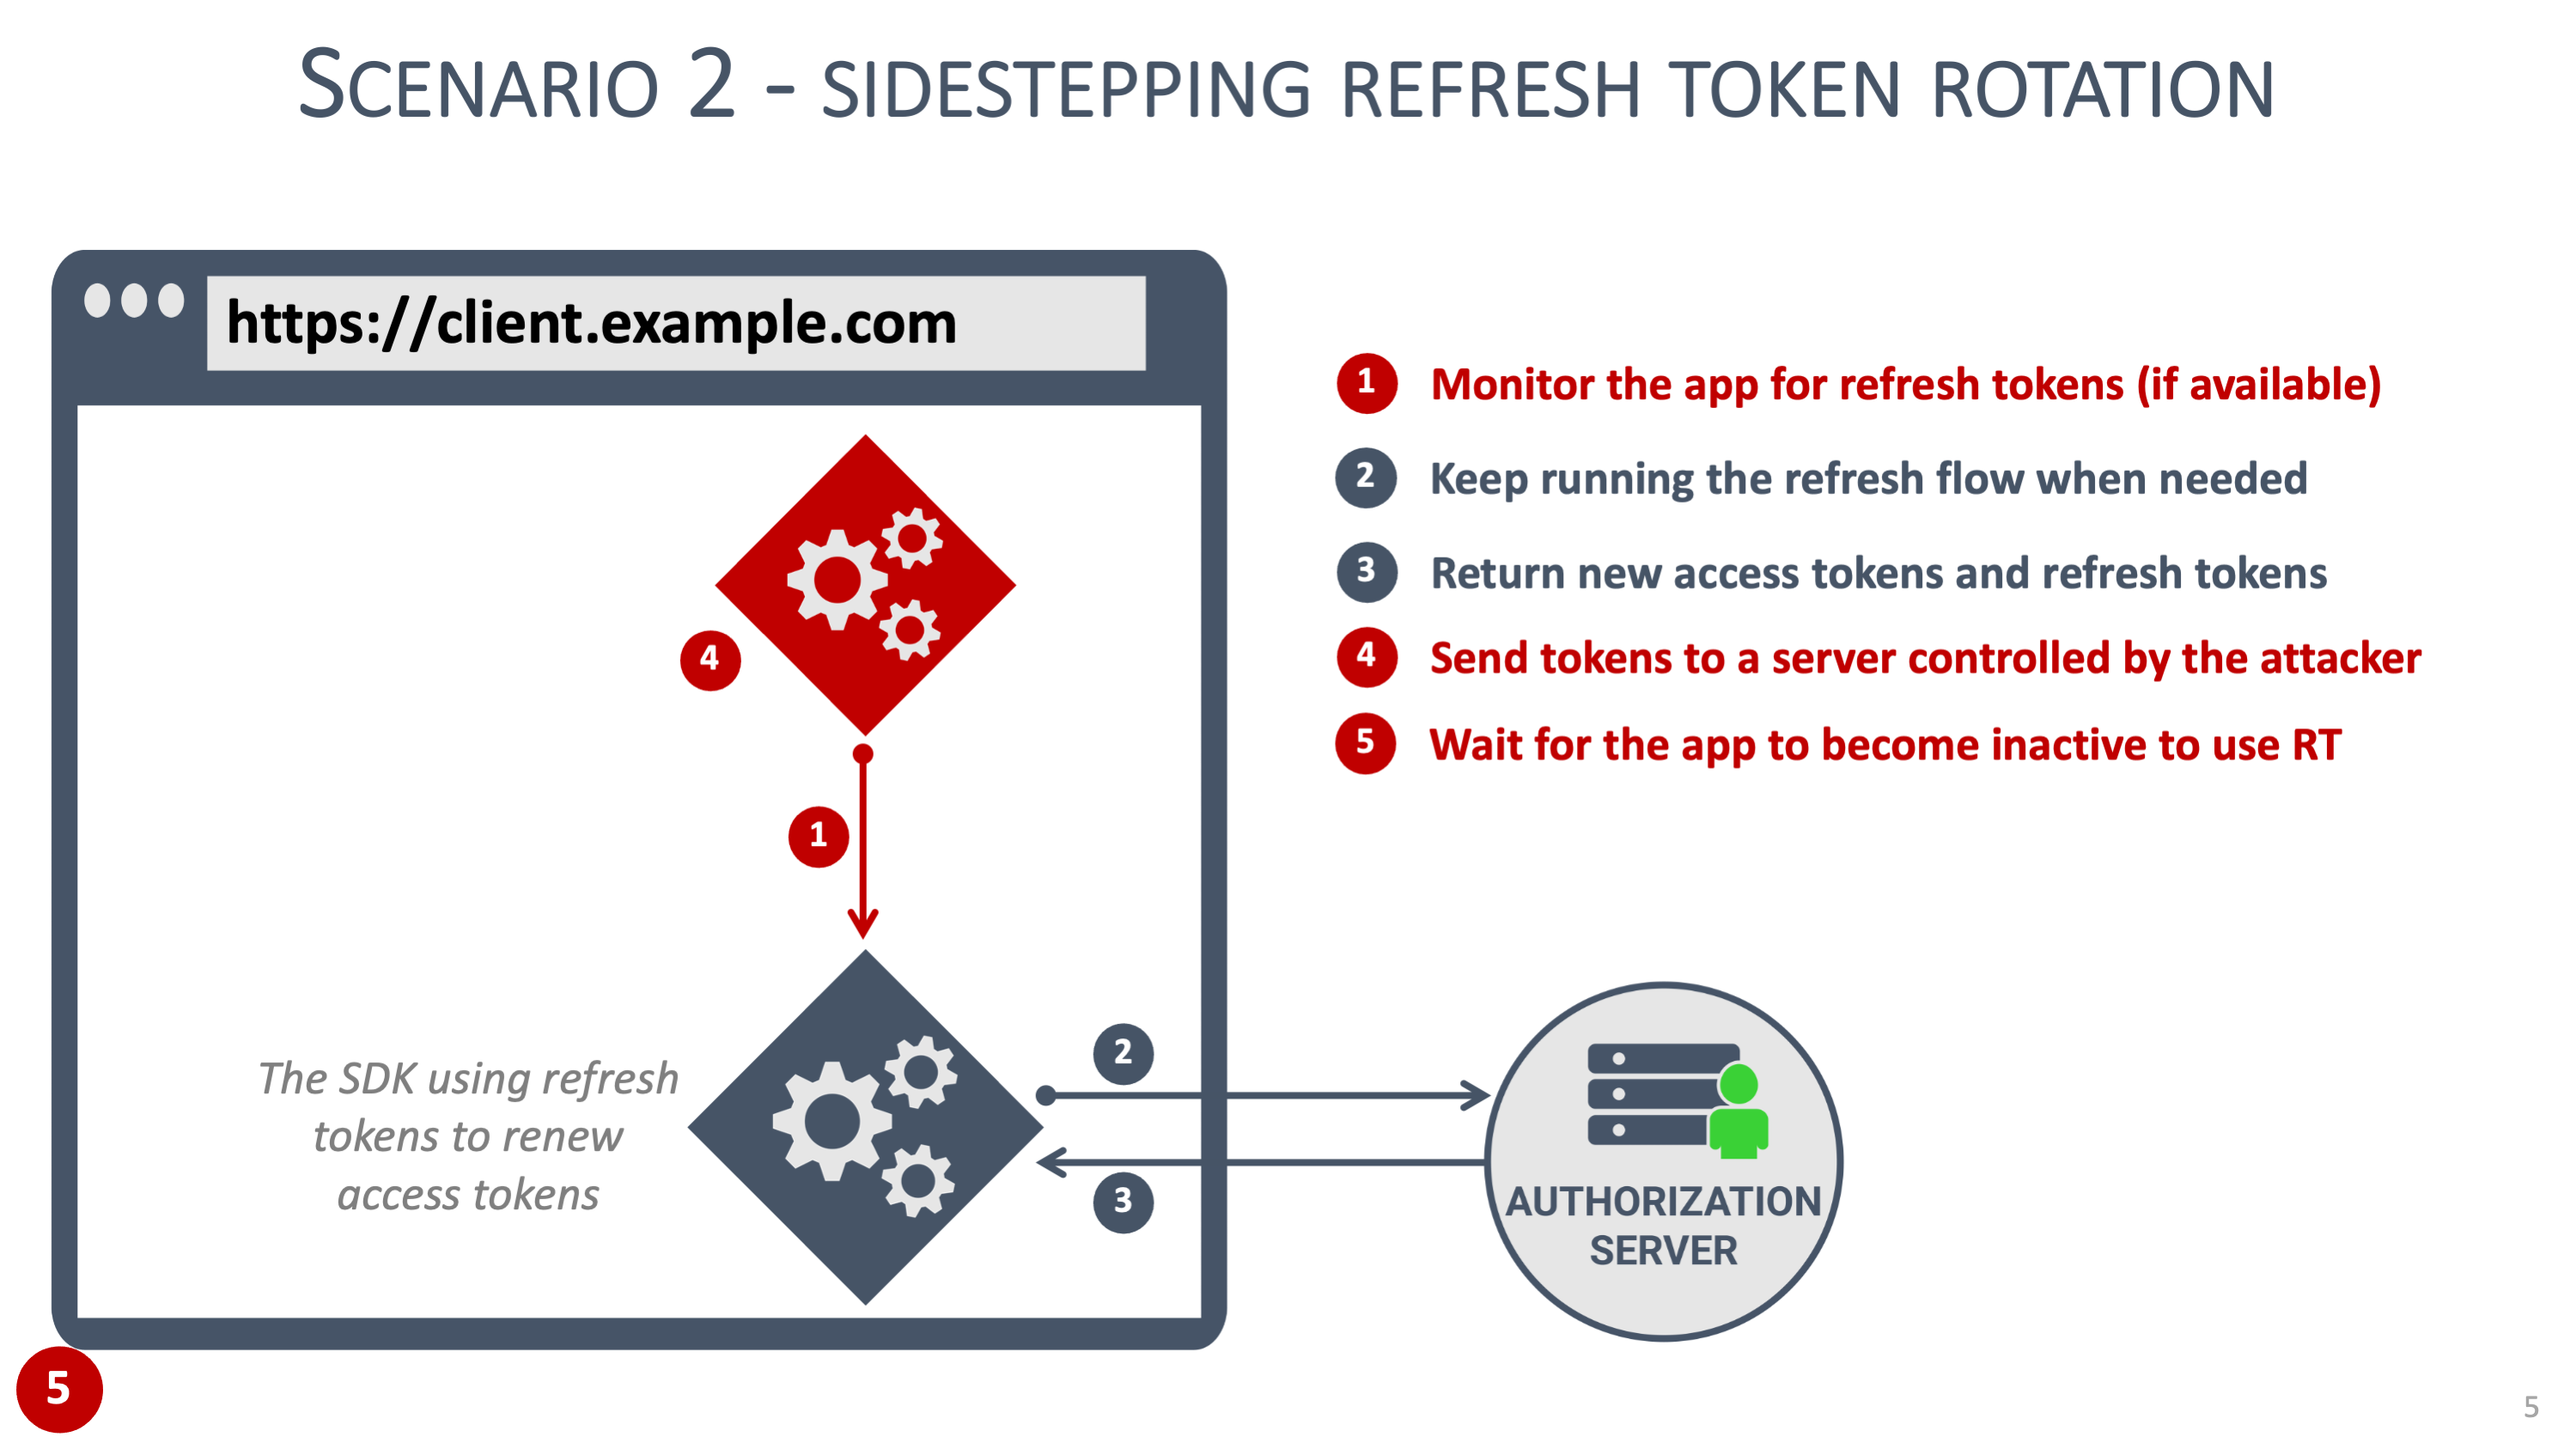 Sidestepping refresh token rotation graphic